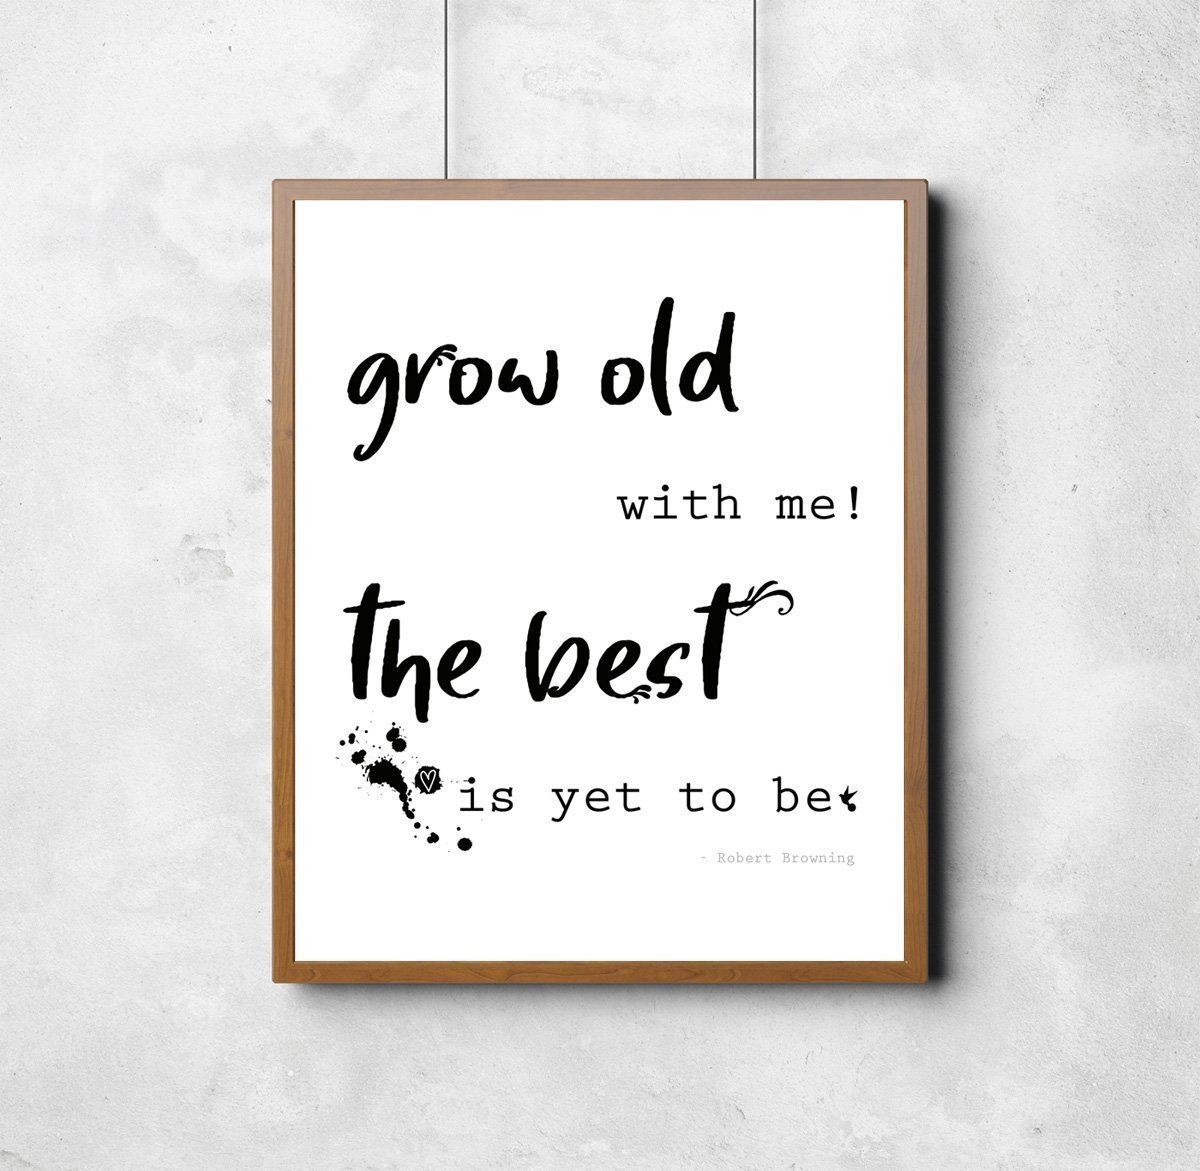 'Grow old with me! The best is yet to be' Robert Browning Print. Nursery print, home decor, valentines present, anniversary present, beautiful quote